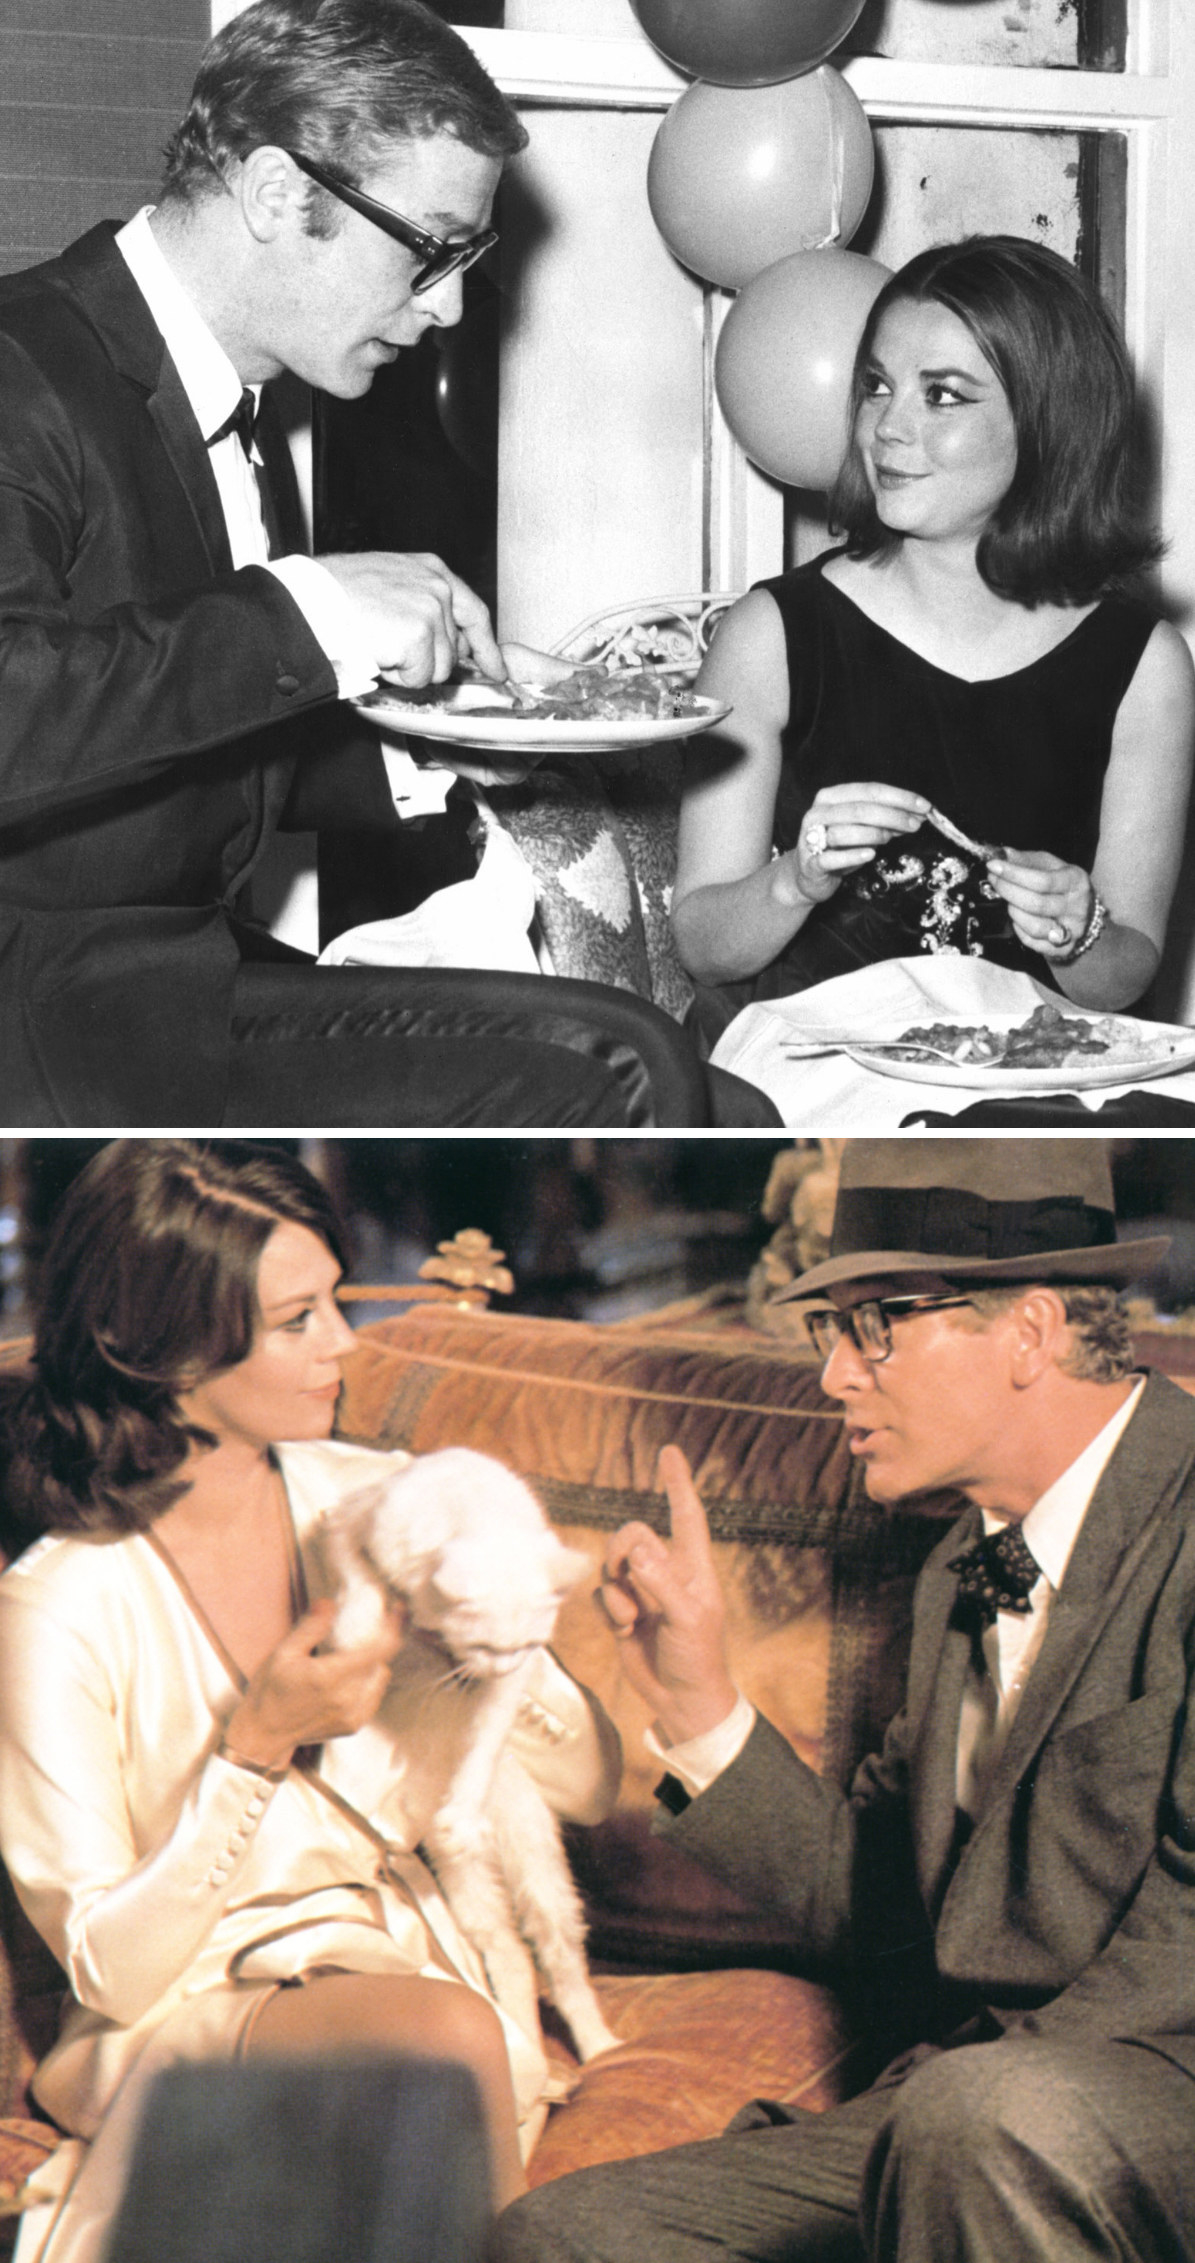 """Wood and Caine eating at an entertainment event in 1966; Wood and Caine in """"Peeper"""" in 1975"""